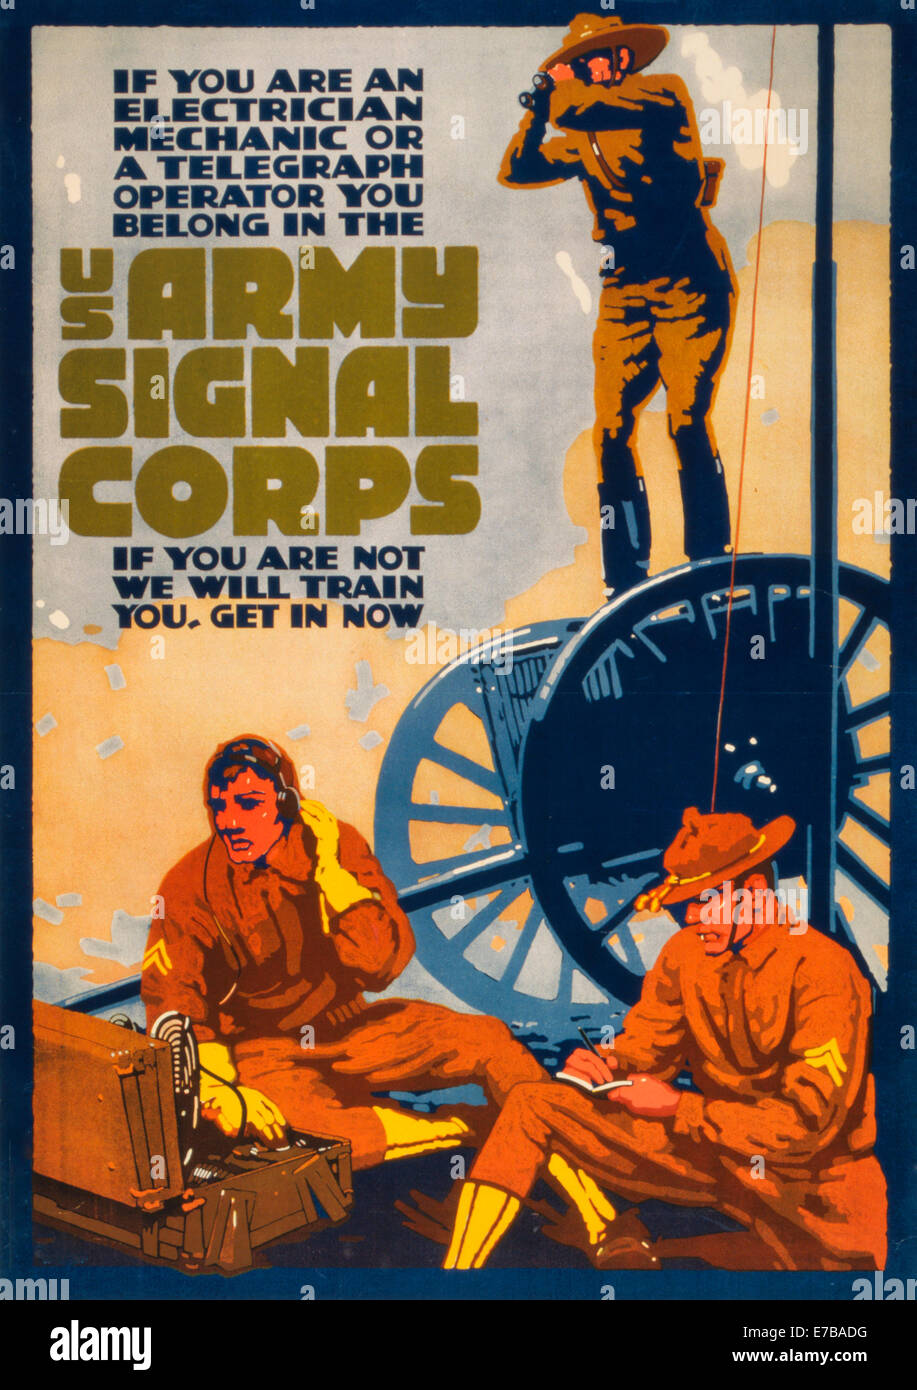 If you are an electrician, mechanic or a telegraph operator you belong in the U.S. Army Signal Corps If you are - Stock Image